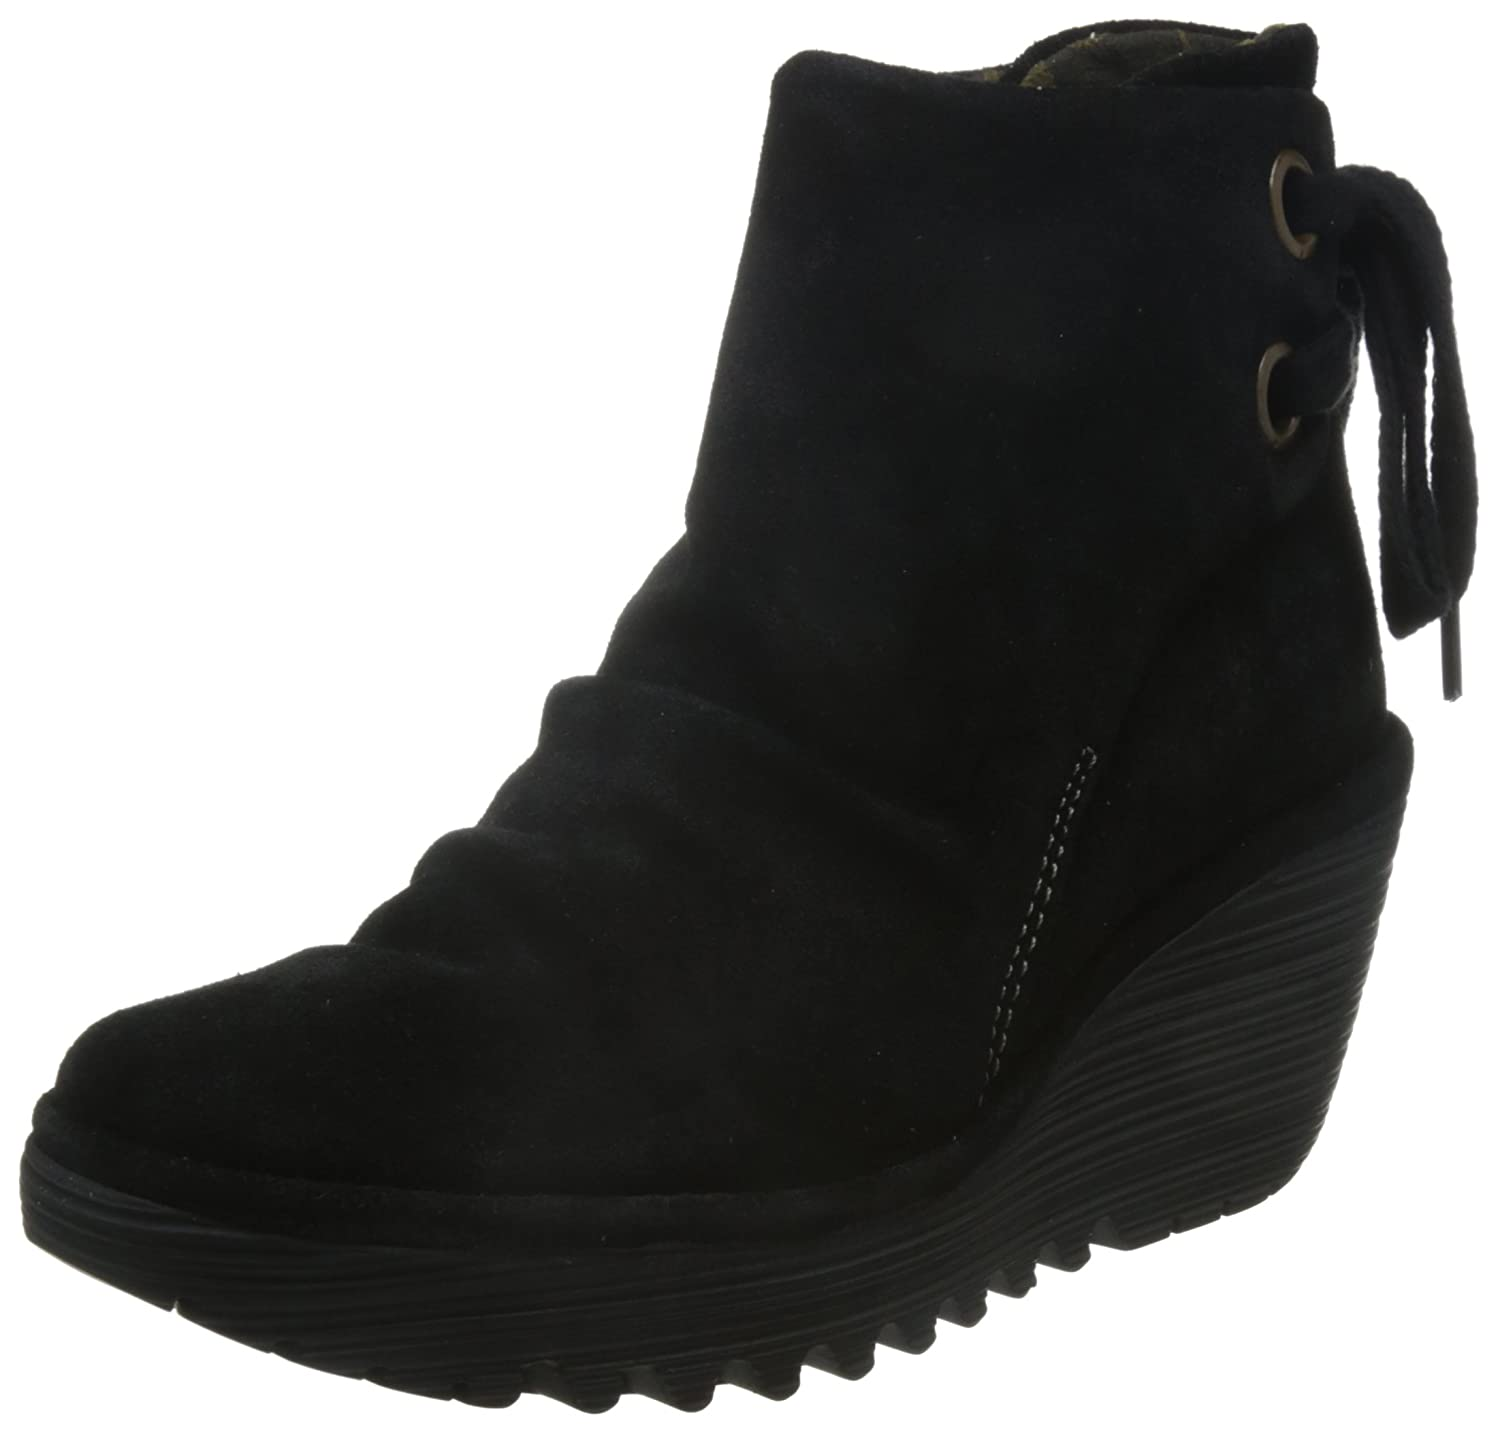 FLY London Women's Yama Ankle Boot B007UP8VC2 36 EU/5.5-6 M US|Black Oiled